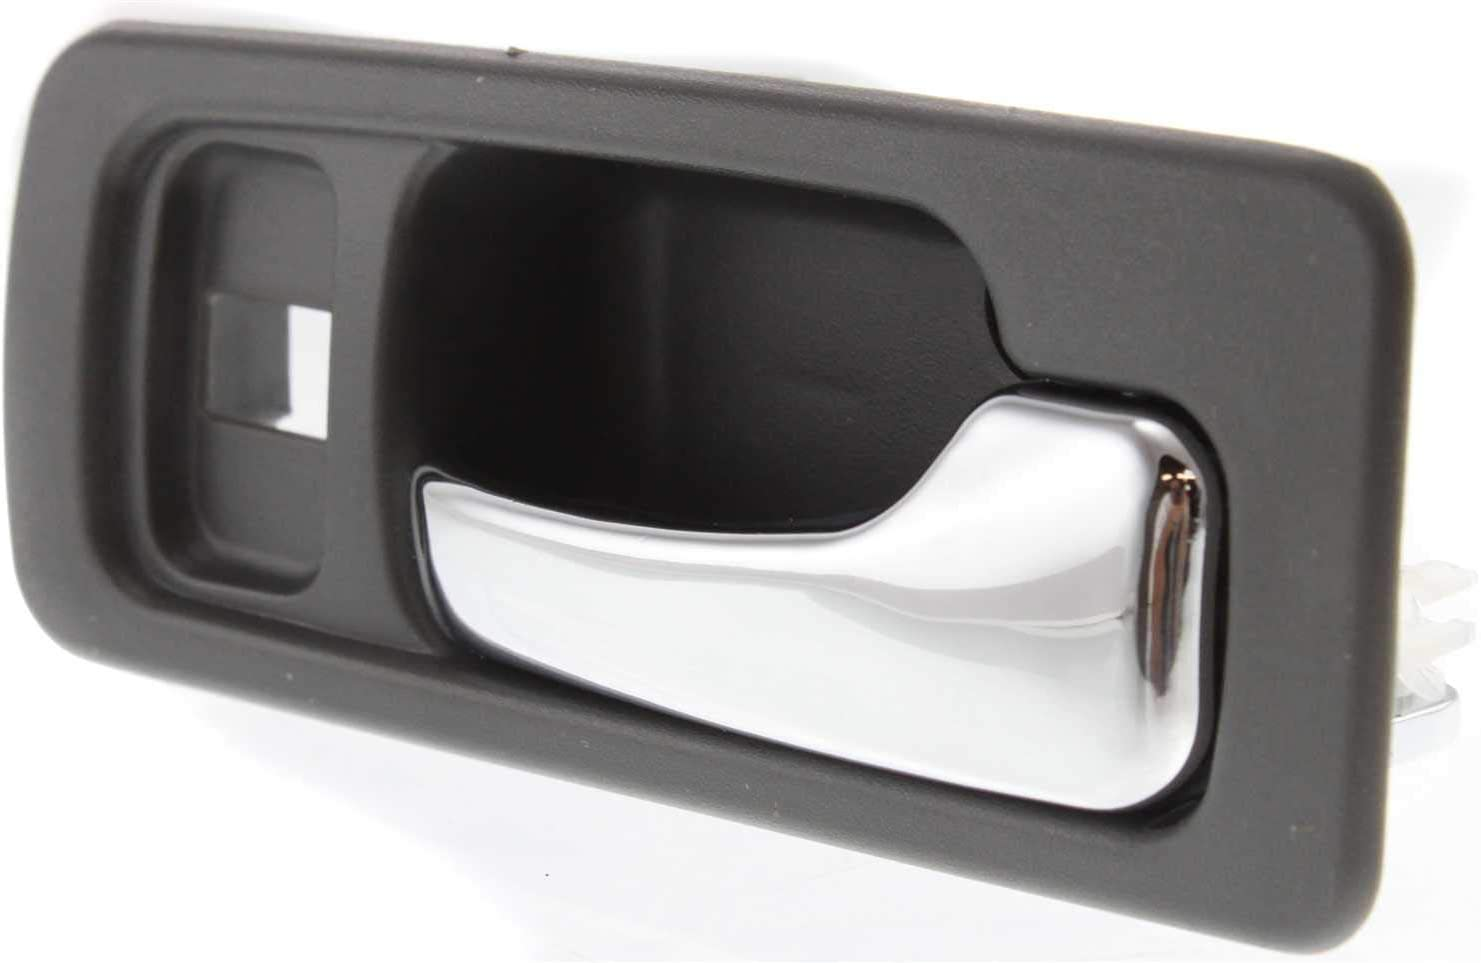 Front Interior Door Handle Set compatible with Honda Accord 90-93 Right and Left Included Inside Chrome Lever+Gray Housing W//Lock Hole